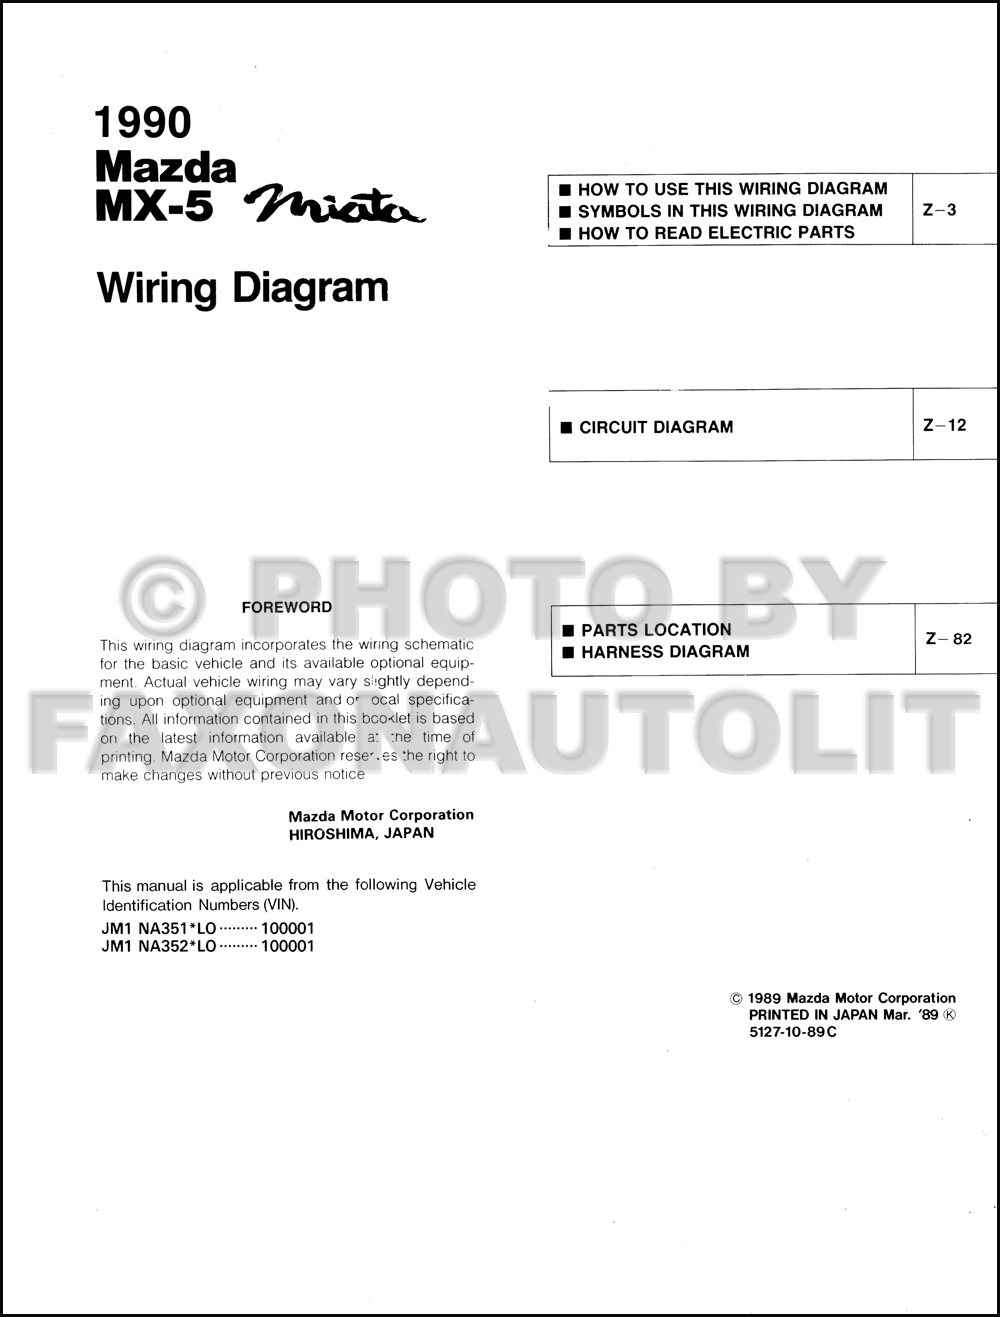 Mazda Eunos Wiring Diagram Library 2008 Miata Mx 5 Diagrams 1990 Manual Original Transmission Cars Click On